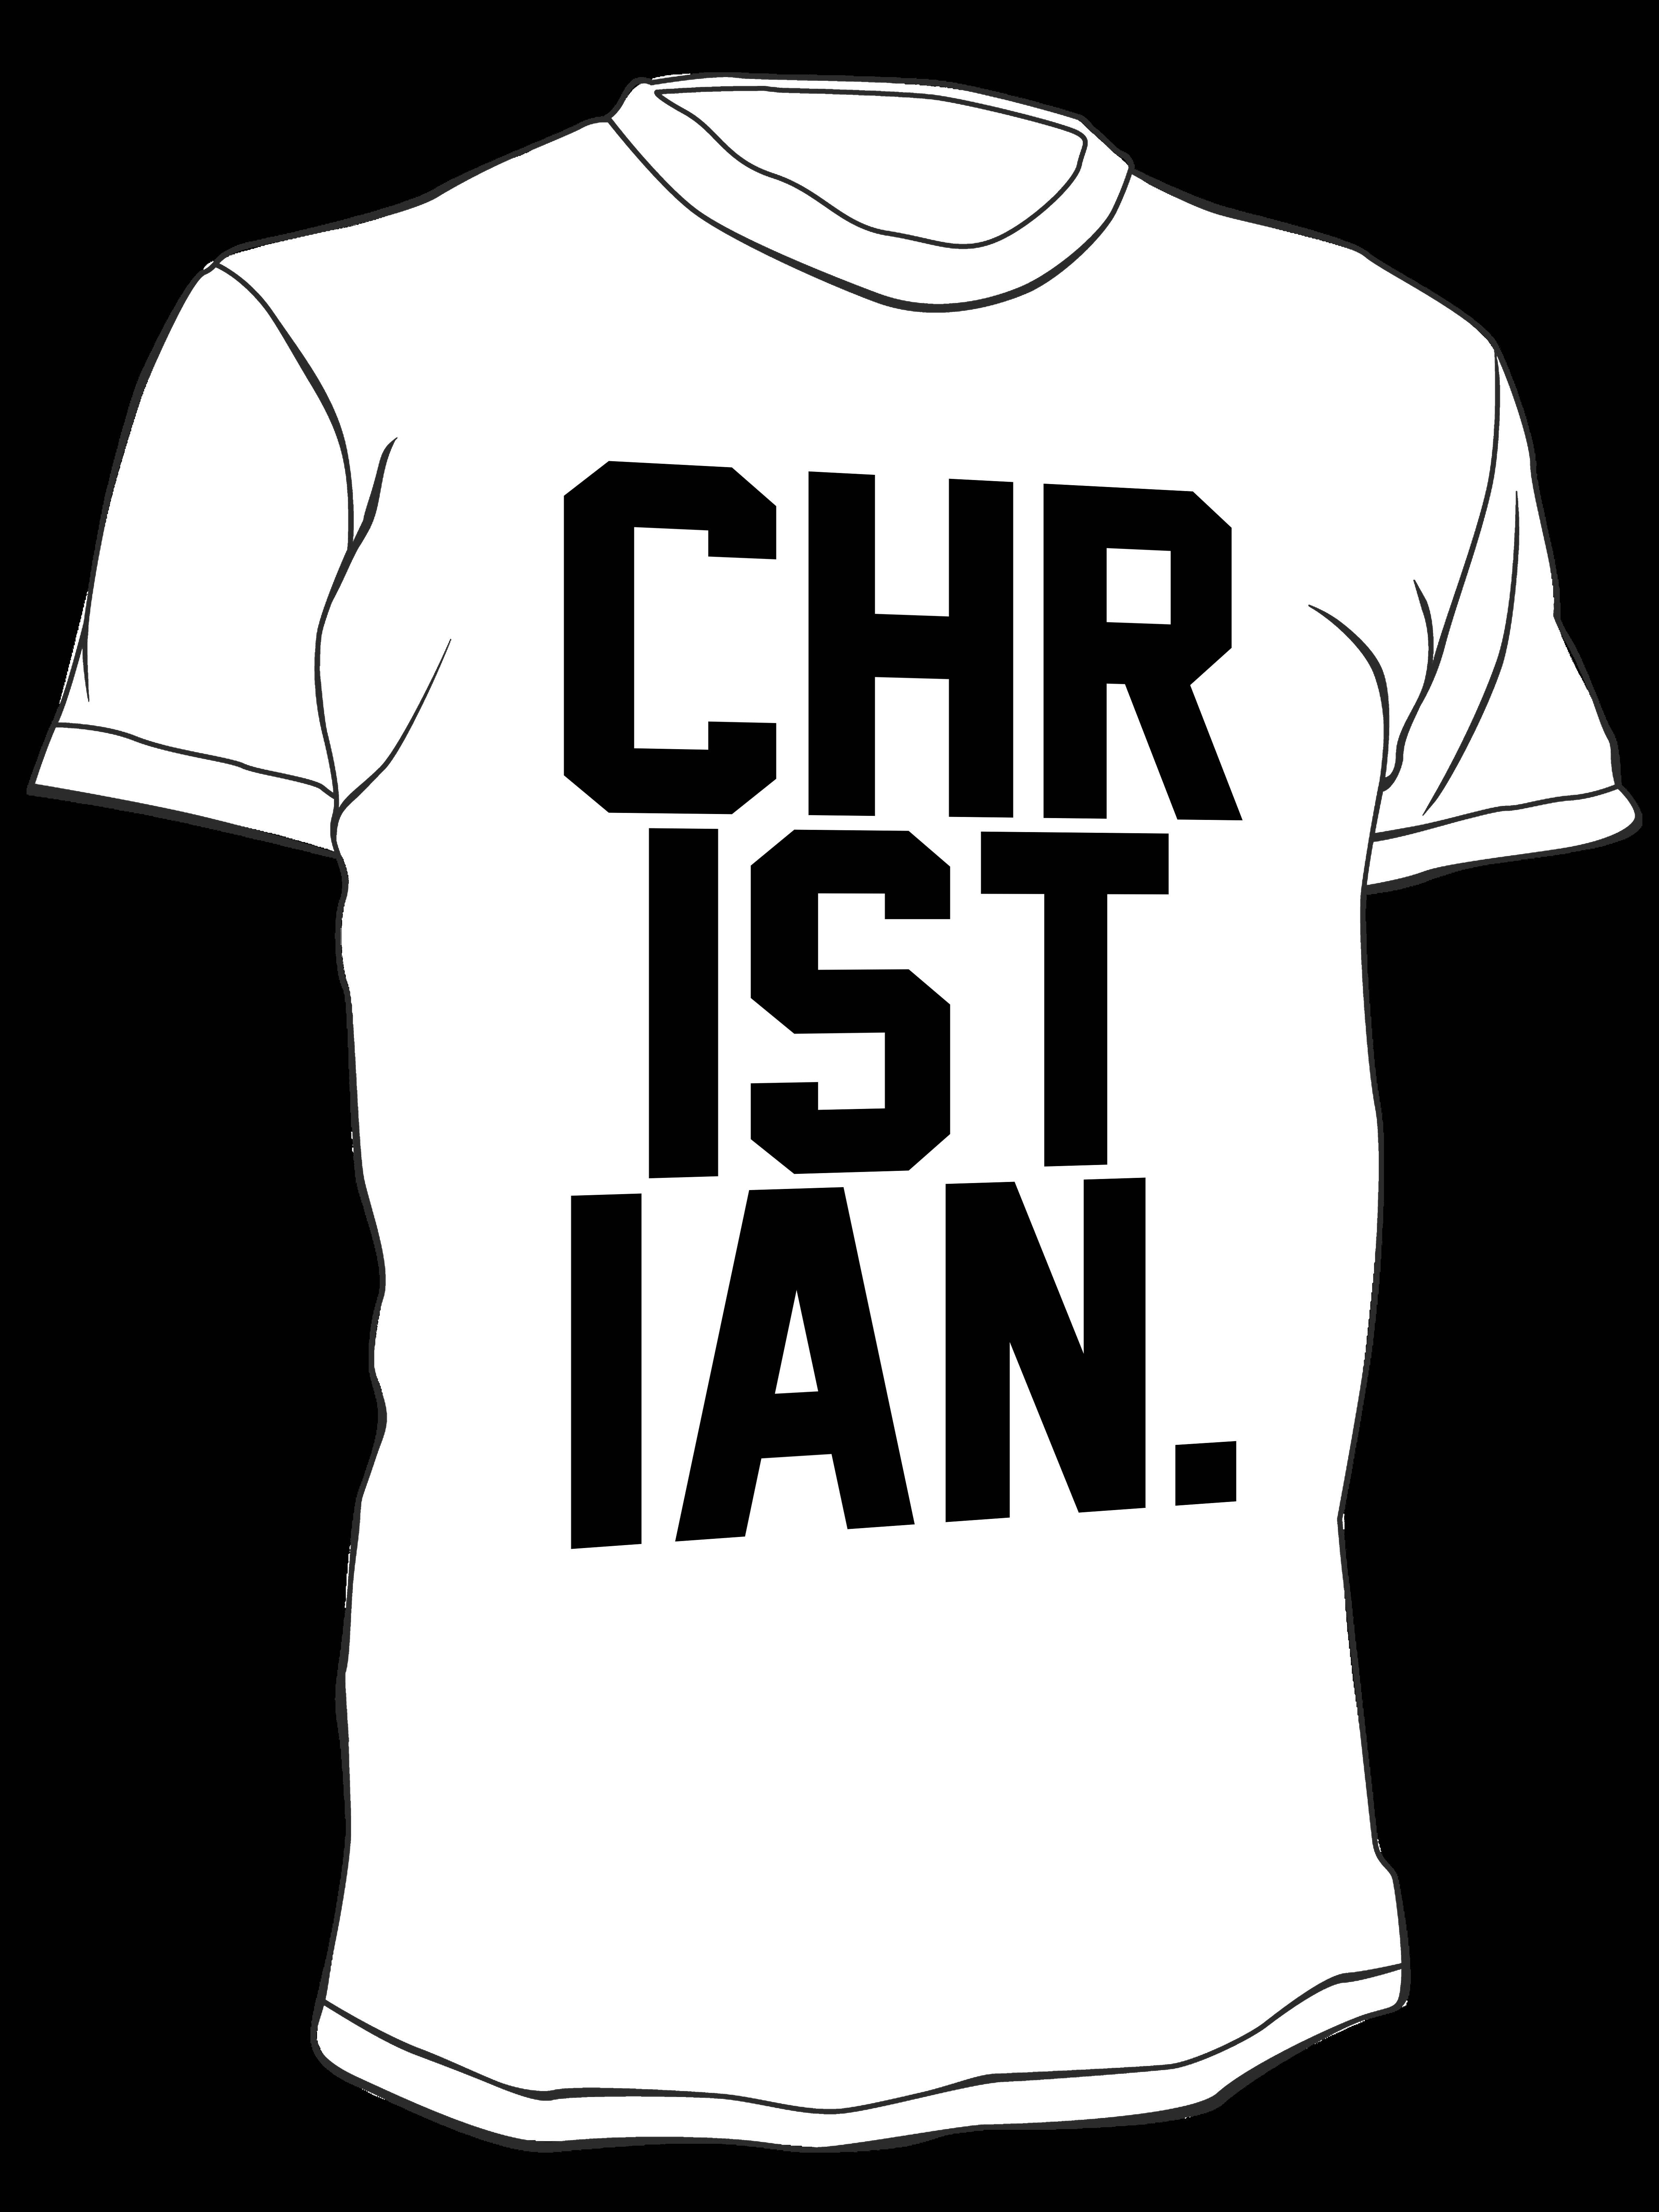 Christian_whiteblack_original